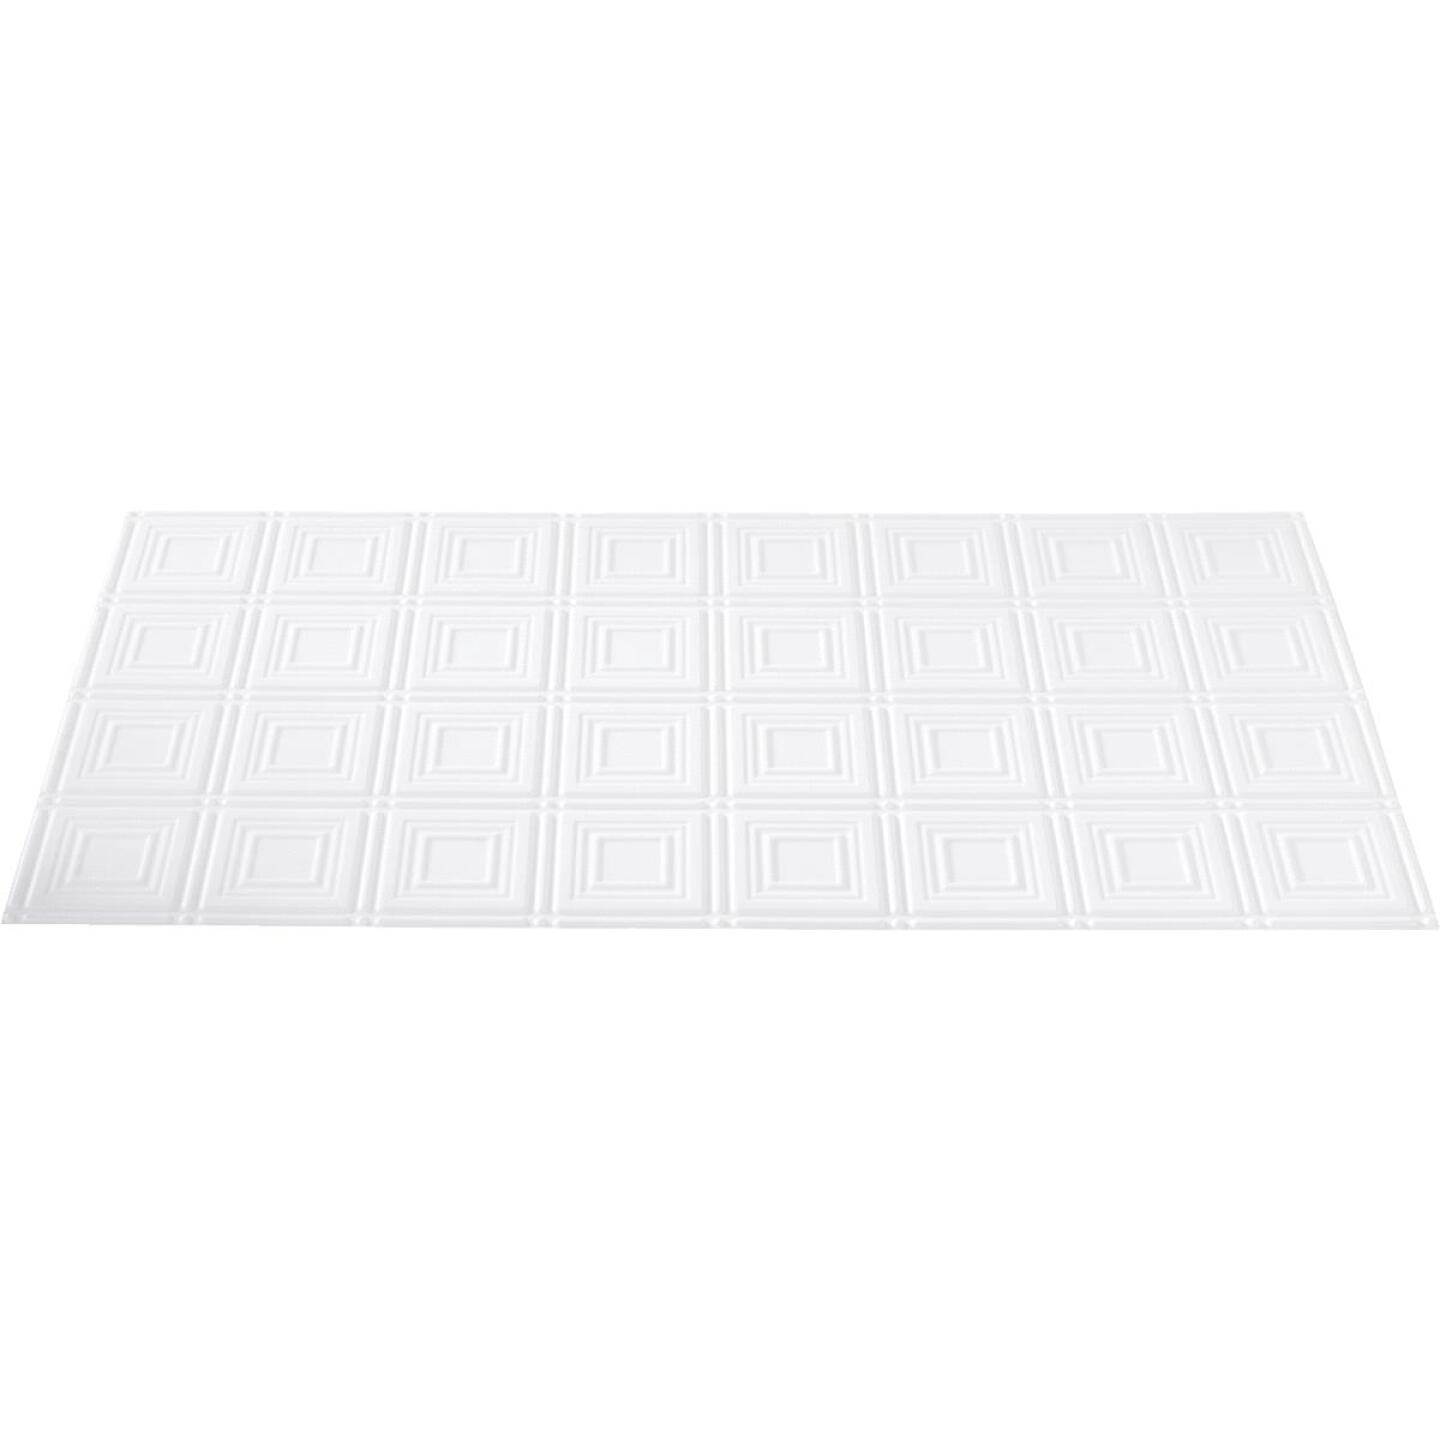 Dimensions 2 Ft. x 4 Ft. White 6 In. Square Pattern Tin Look Nonsuspended Ceiling Tile & Backsplash Image 4